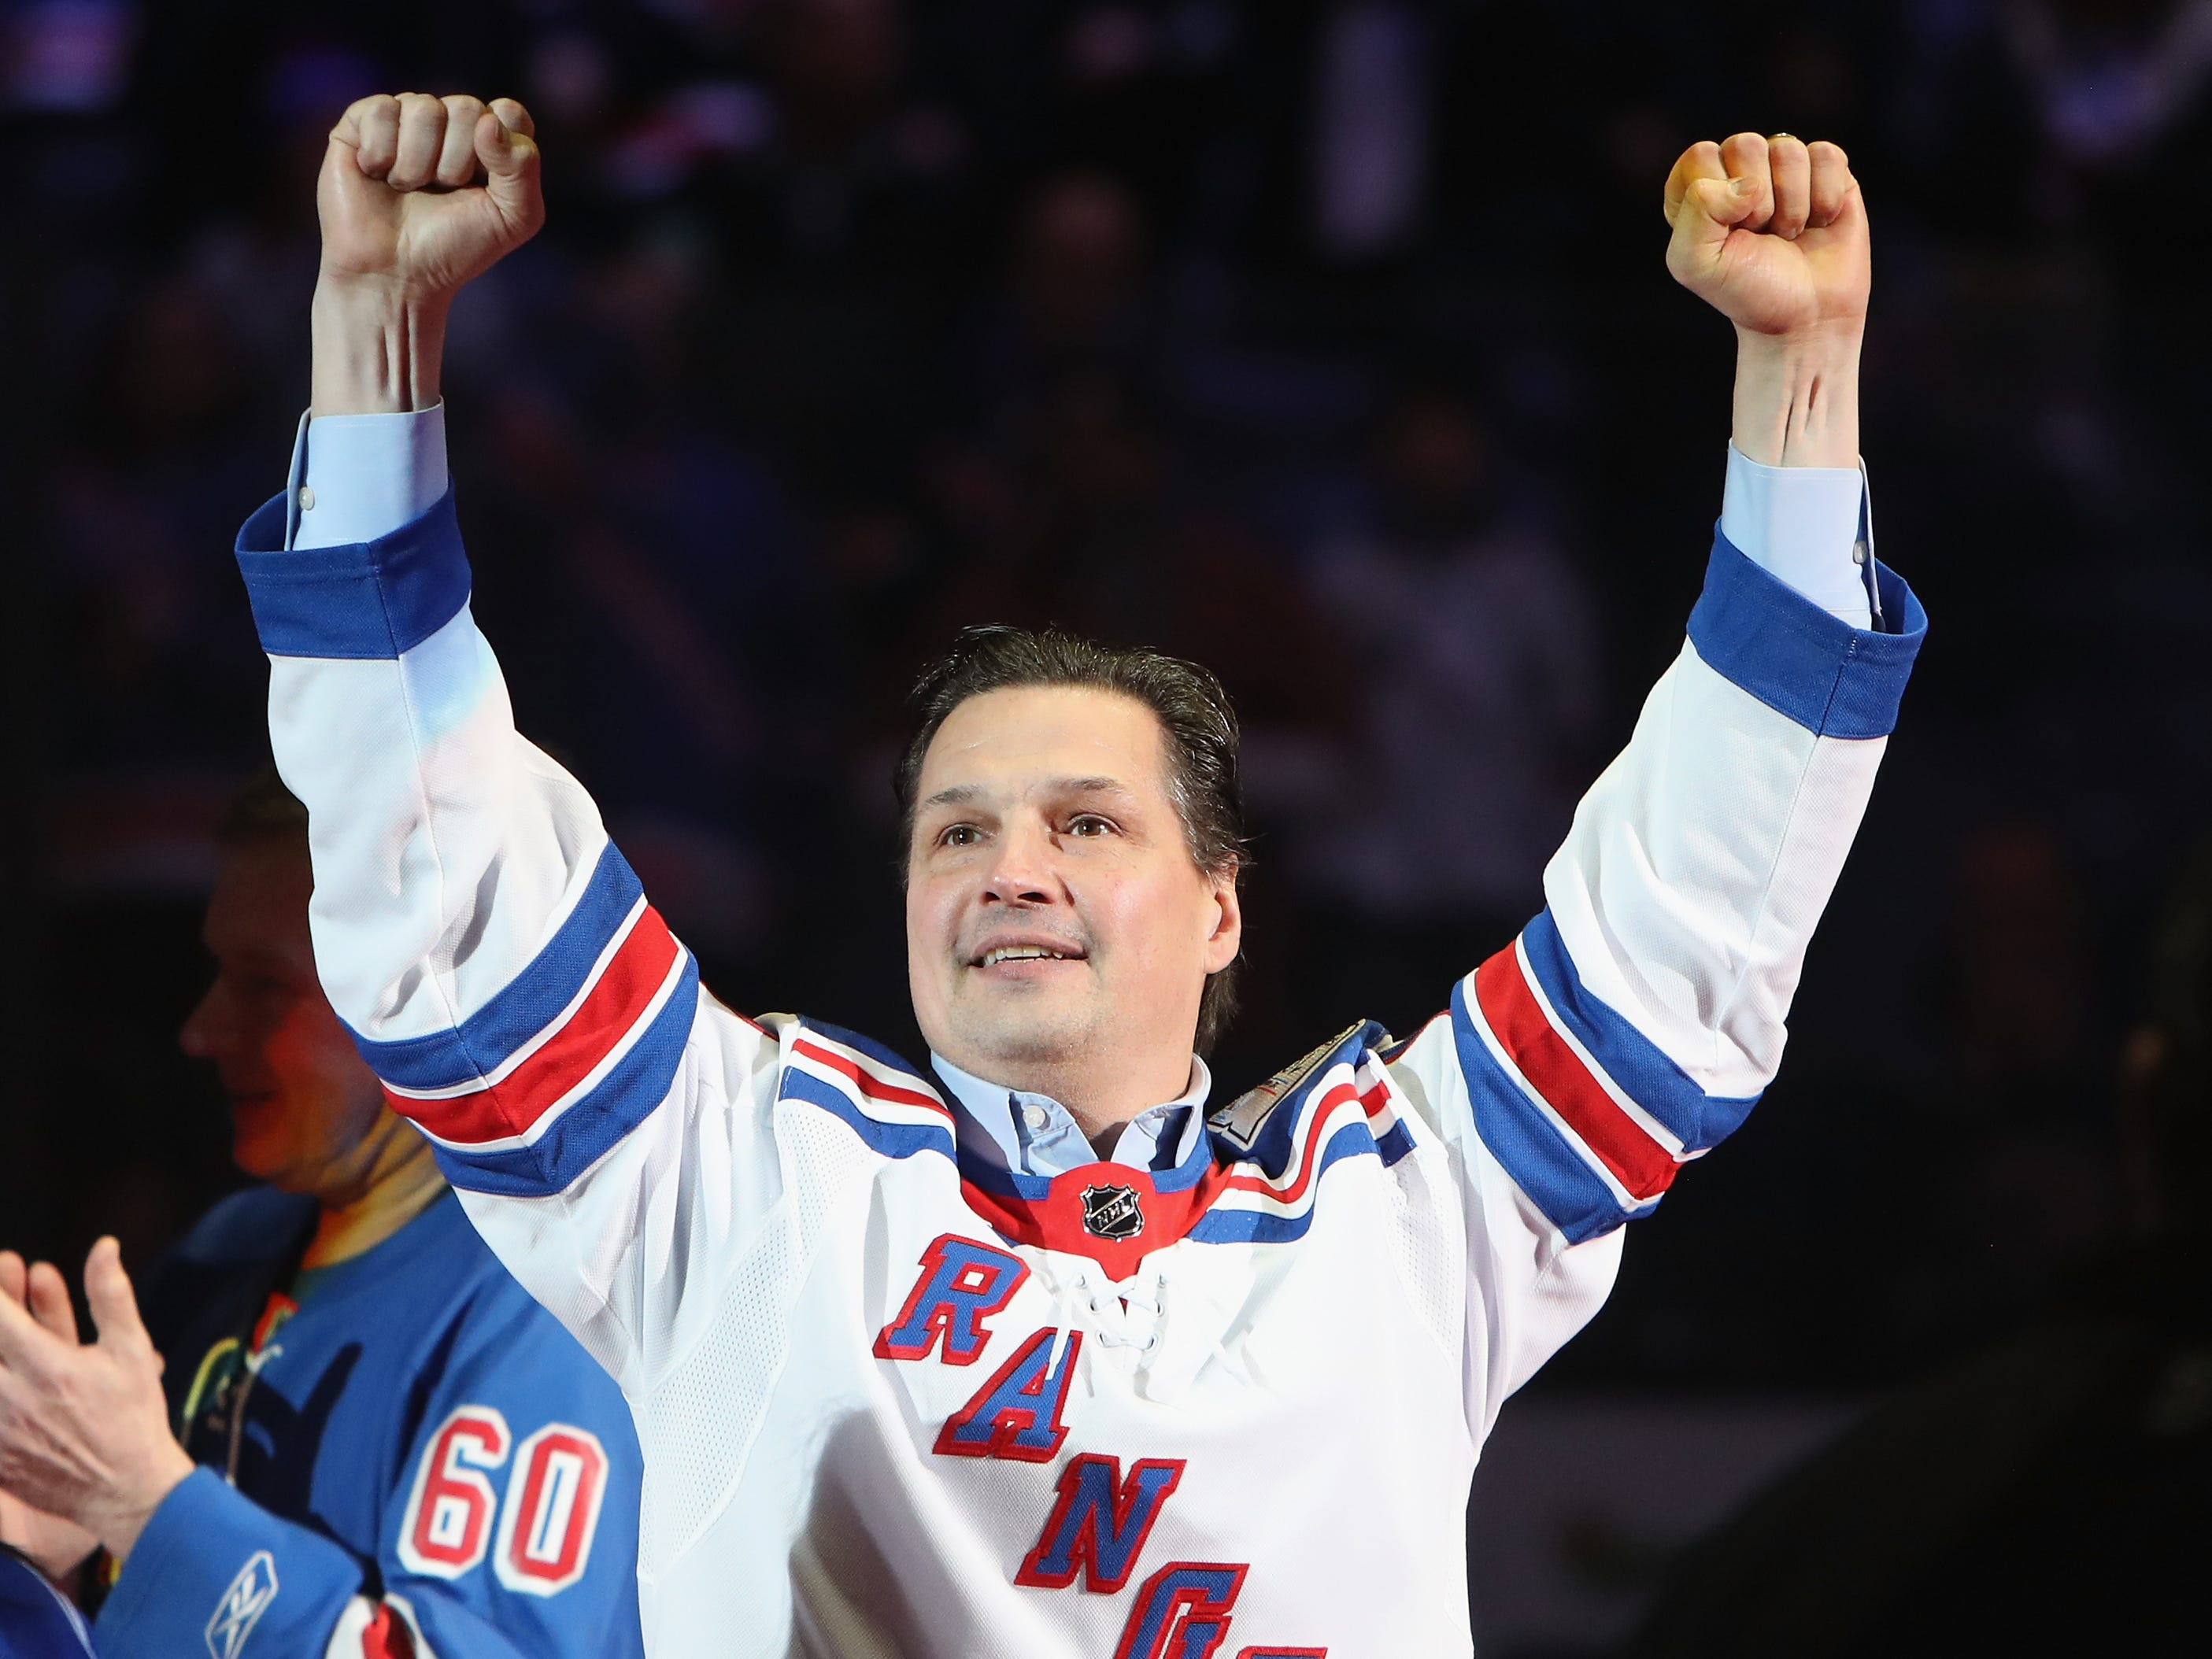 NEW YORK, NEW YORK - FEBRUARY 08: Ed Olczyk of the New York Rangers Stanley Cup winning team of 1994 attend a ceremony prior to the Rangers game against the Carolina Hurricanes at Madison Square Garden on February 08, 2019 in New York City. The Rangers were celebrating the 25th anniversary of their Stanley Cup win in 1994.